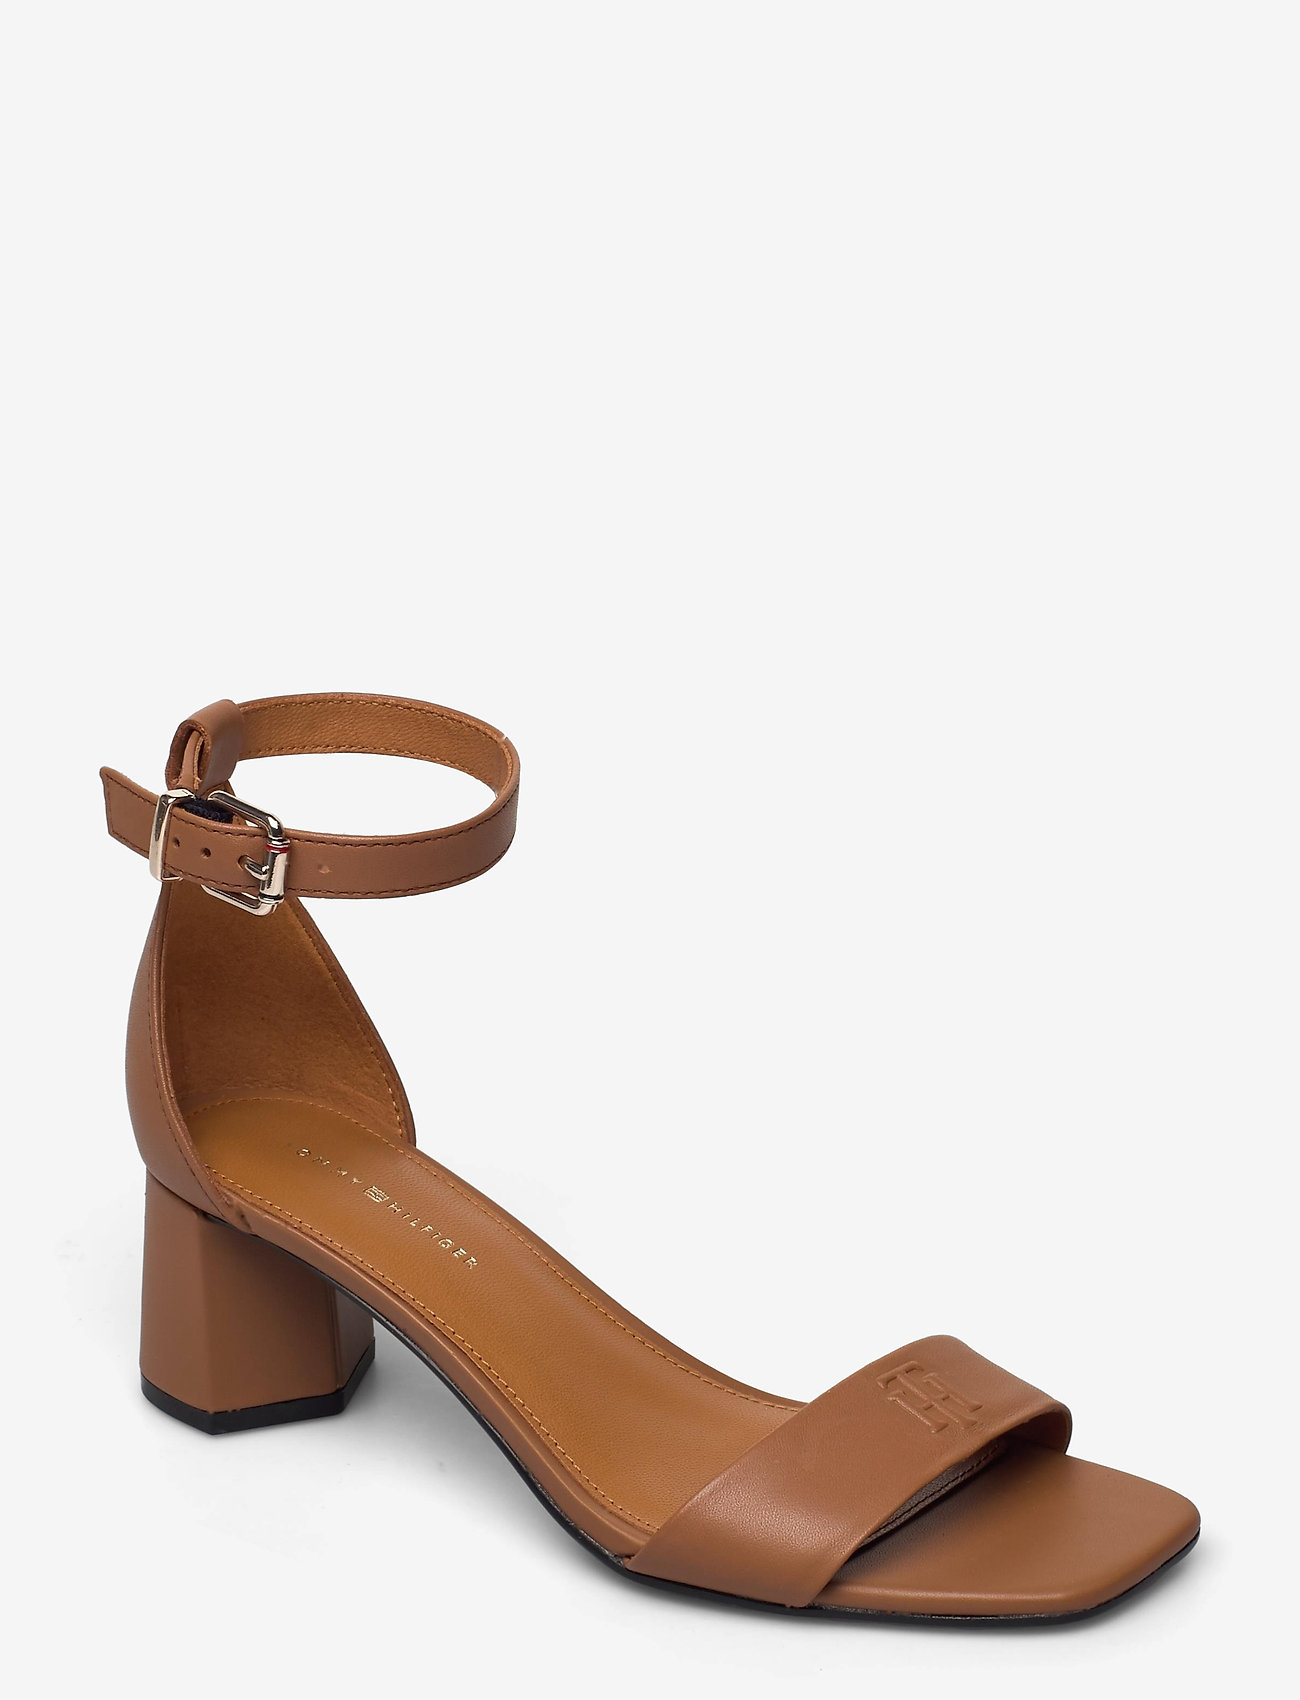 Tommy Hilfiger - ESSENTIAL MID HEEL SANDAL - heeled sandals - summer cognac - 0